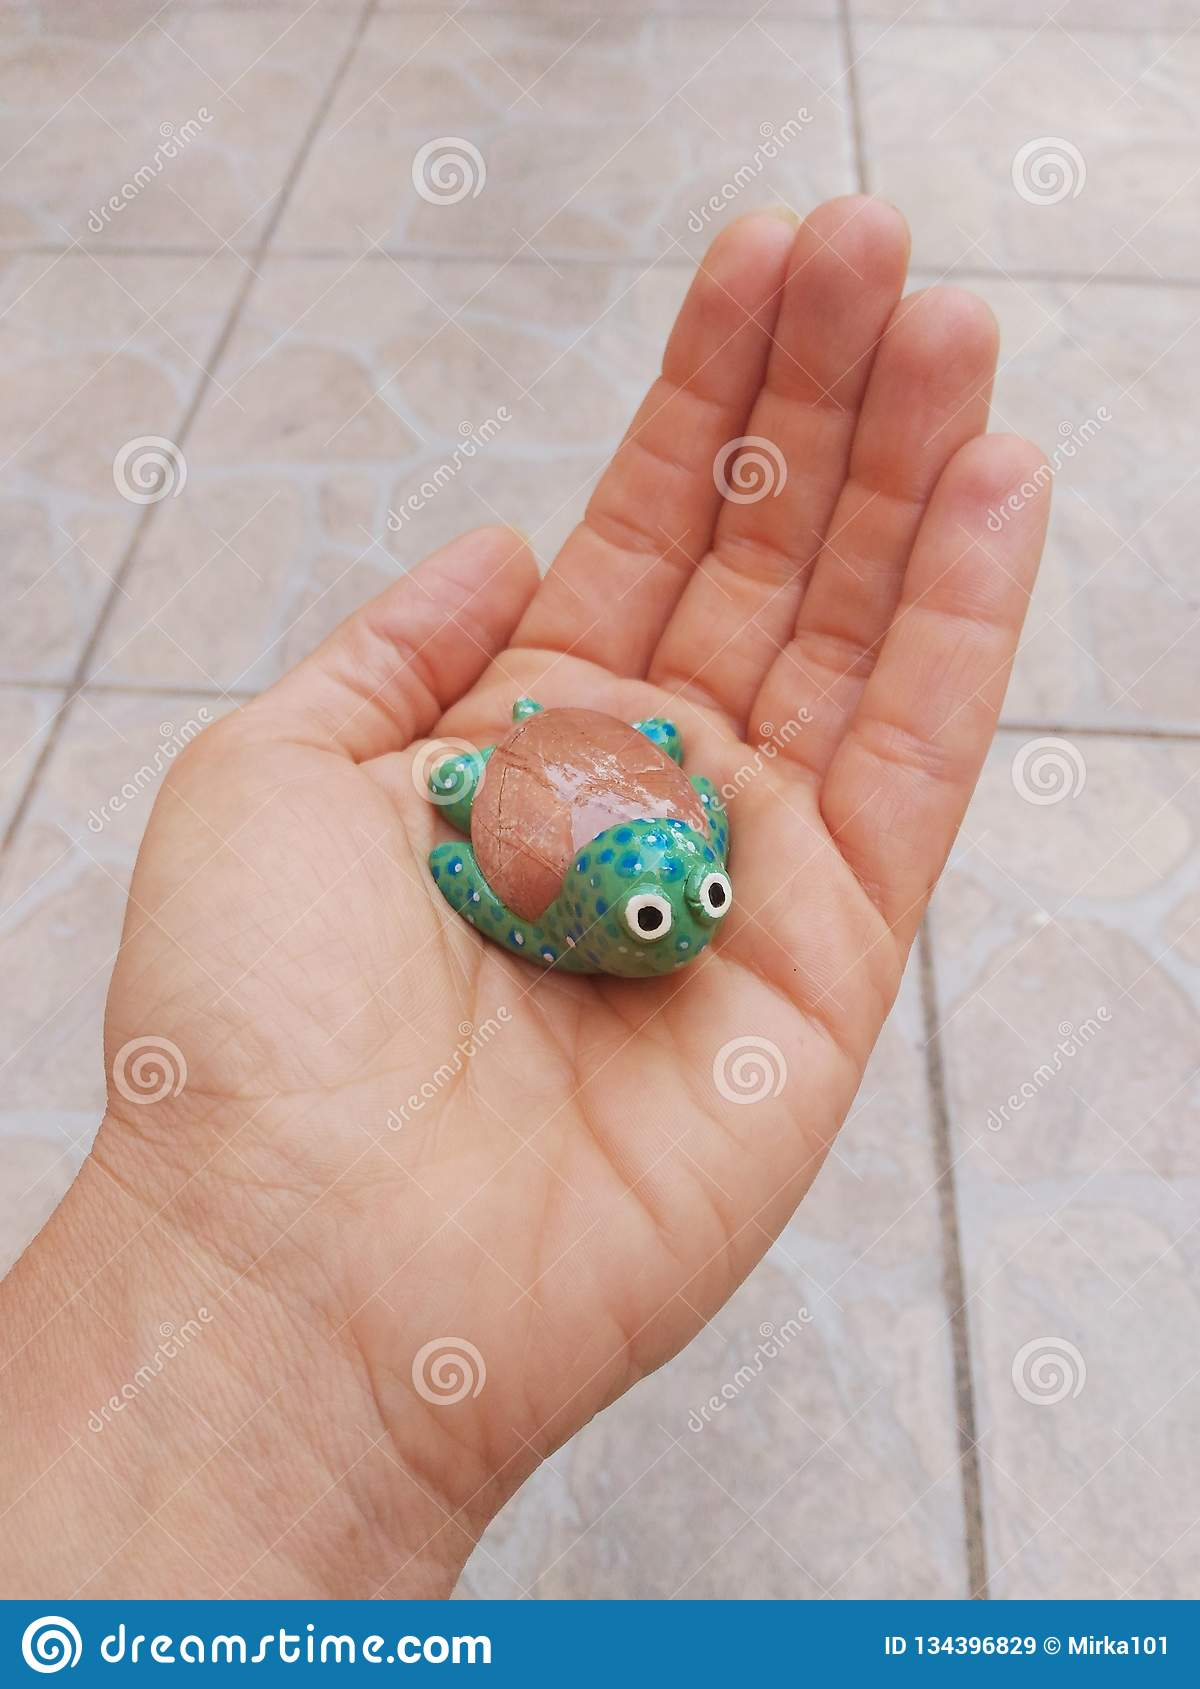 Handmade Turtle Art And Crafts Stock Image Image Of Made Little 134396829